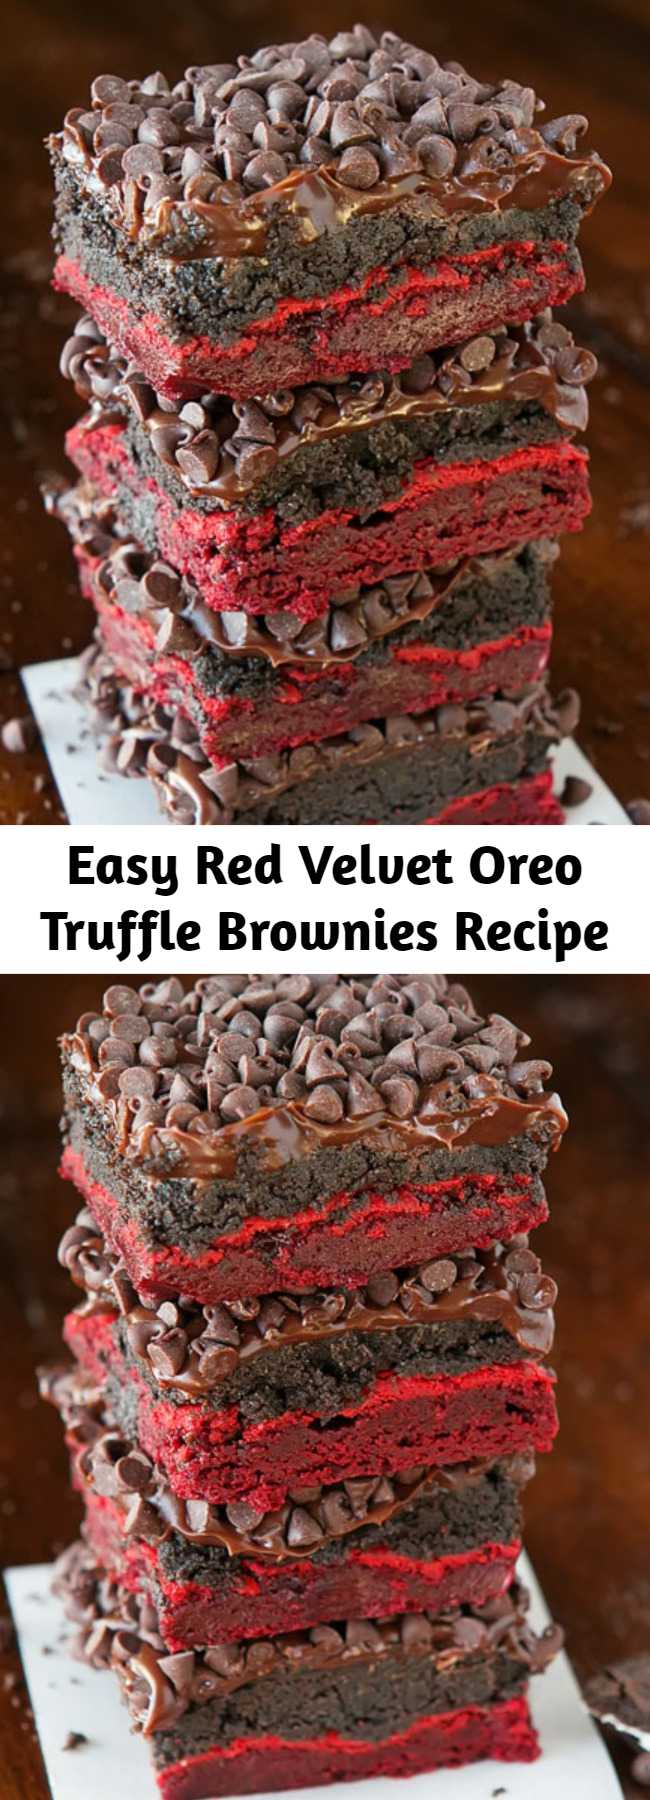 Easy Red Velvet Oreo Truffle Brownies Recipe - These impossibly delicious Red Velvet Oreo Truffle Brownies are so easy to make with red velvet cake mix. Filled with creamy Oreo truffle filling and topped with rich chocolate ganache & chocolate chips, these brownies are ultimate decadence.